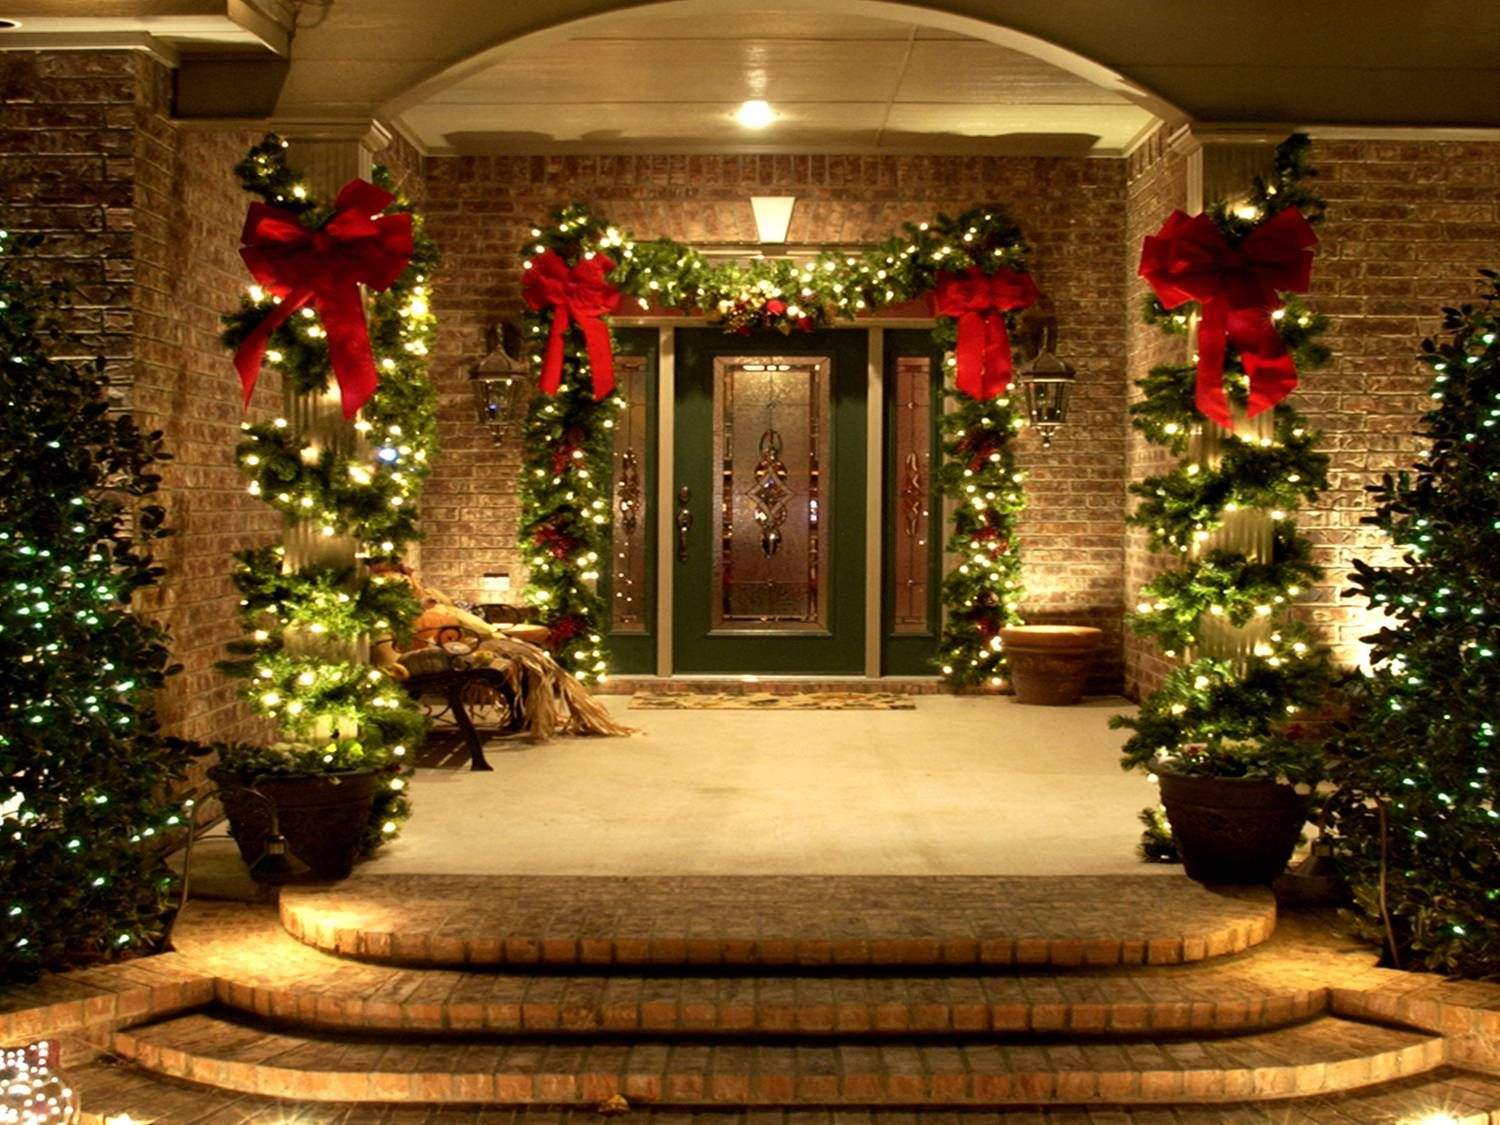 dazzling ideas for lighting your surroundings this christmas